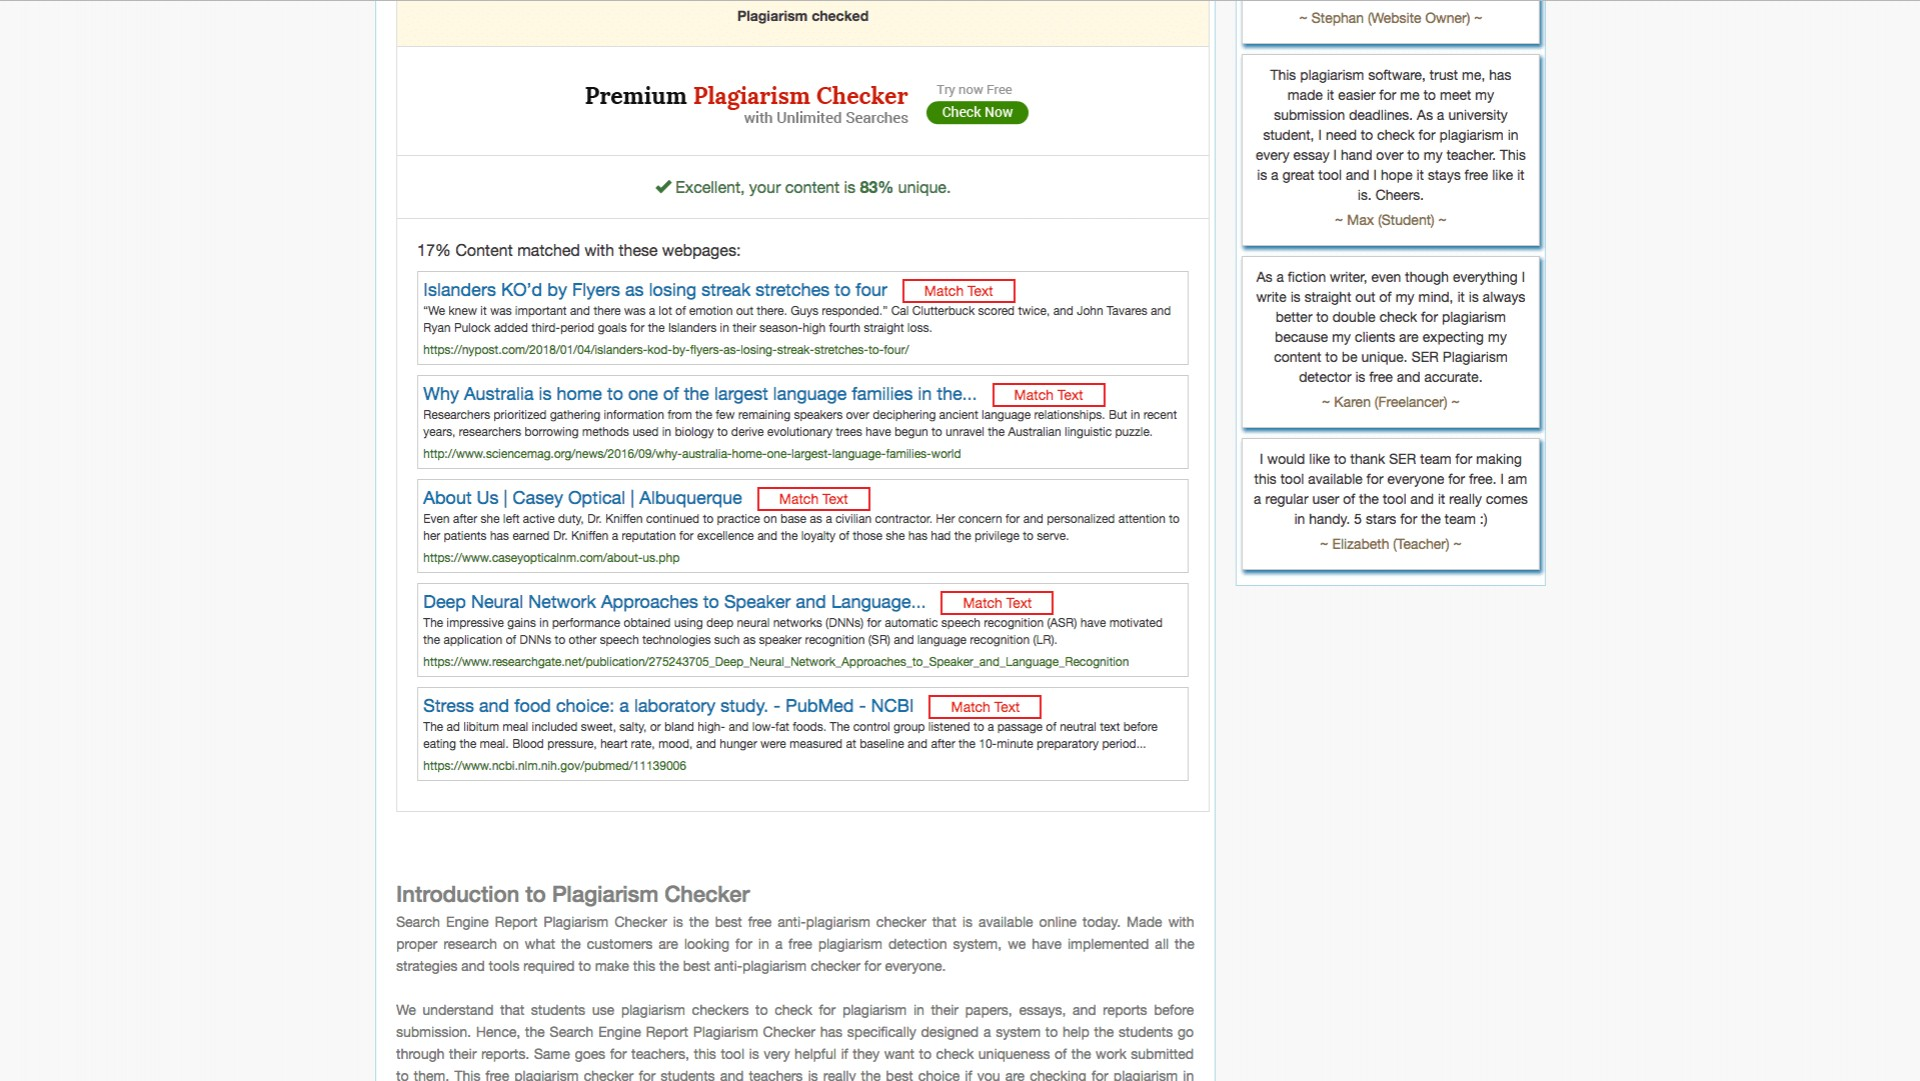 005 Research Paper Searchenginereports Check Plagiarism Of Online Exceptional Free How To Best Checker For Papers Quora 1920